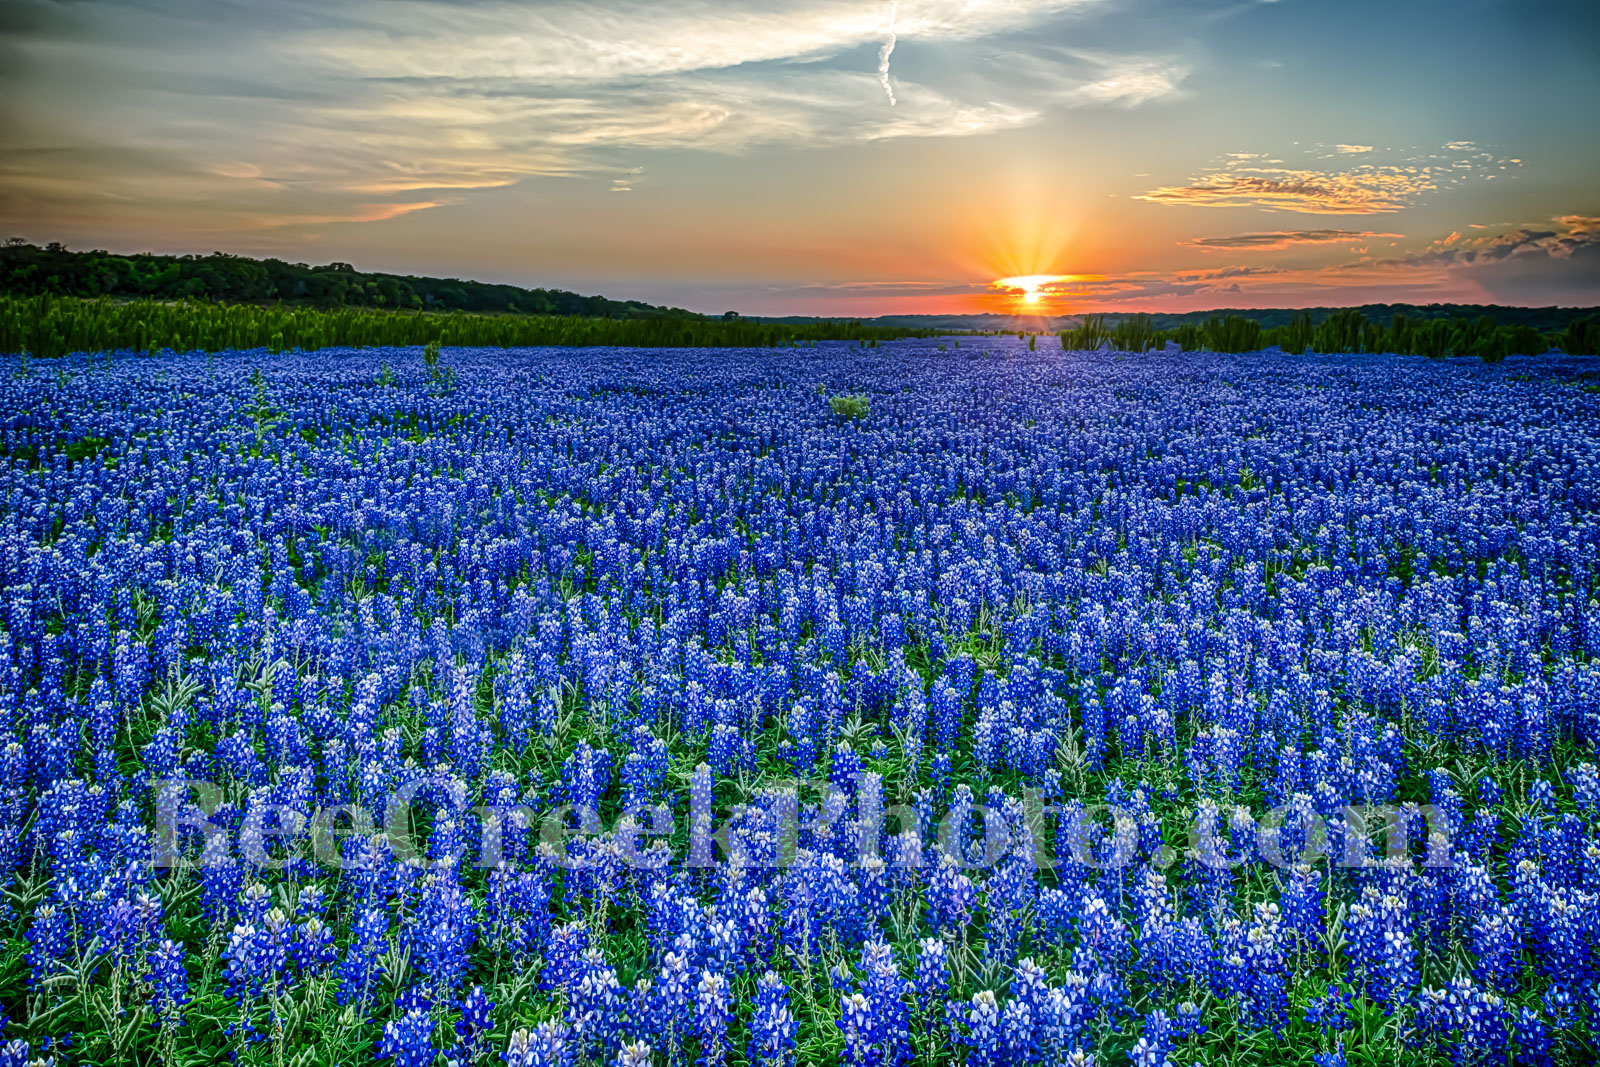 Bluebonnets, Texas Hill country bluebonnets,  texas bluebonnets, field of bluebonnets, texas hill country, images of bluebonnets, pictures of bluebonnets, spring, Muleshoe Park, Colorado river, heaven, photo